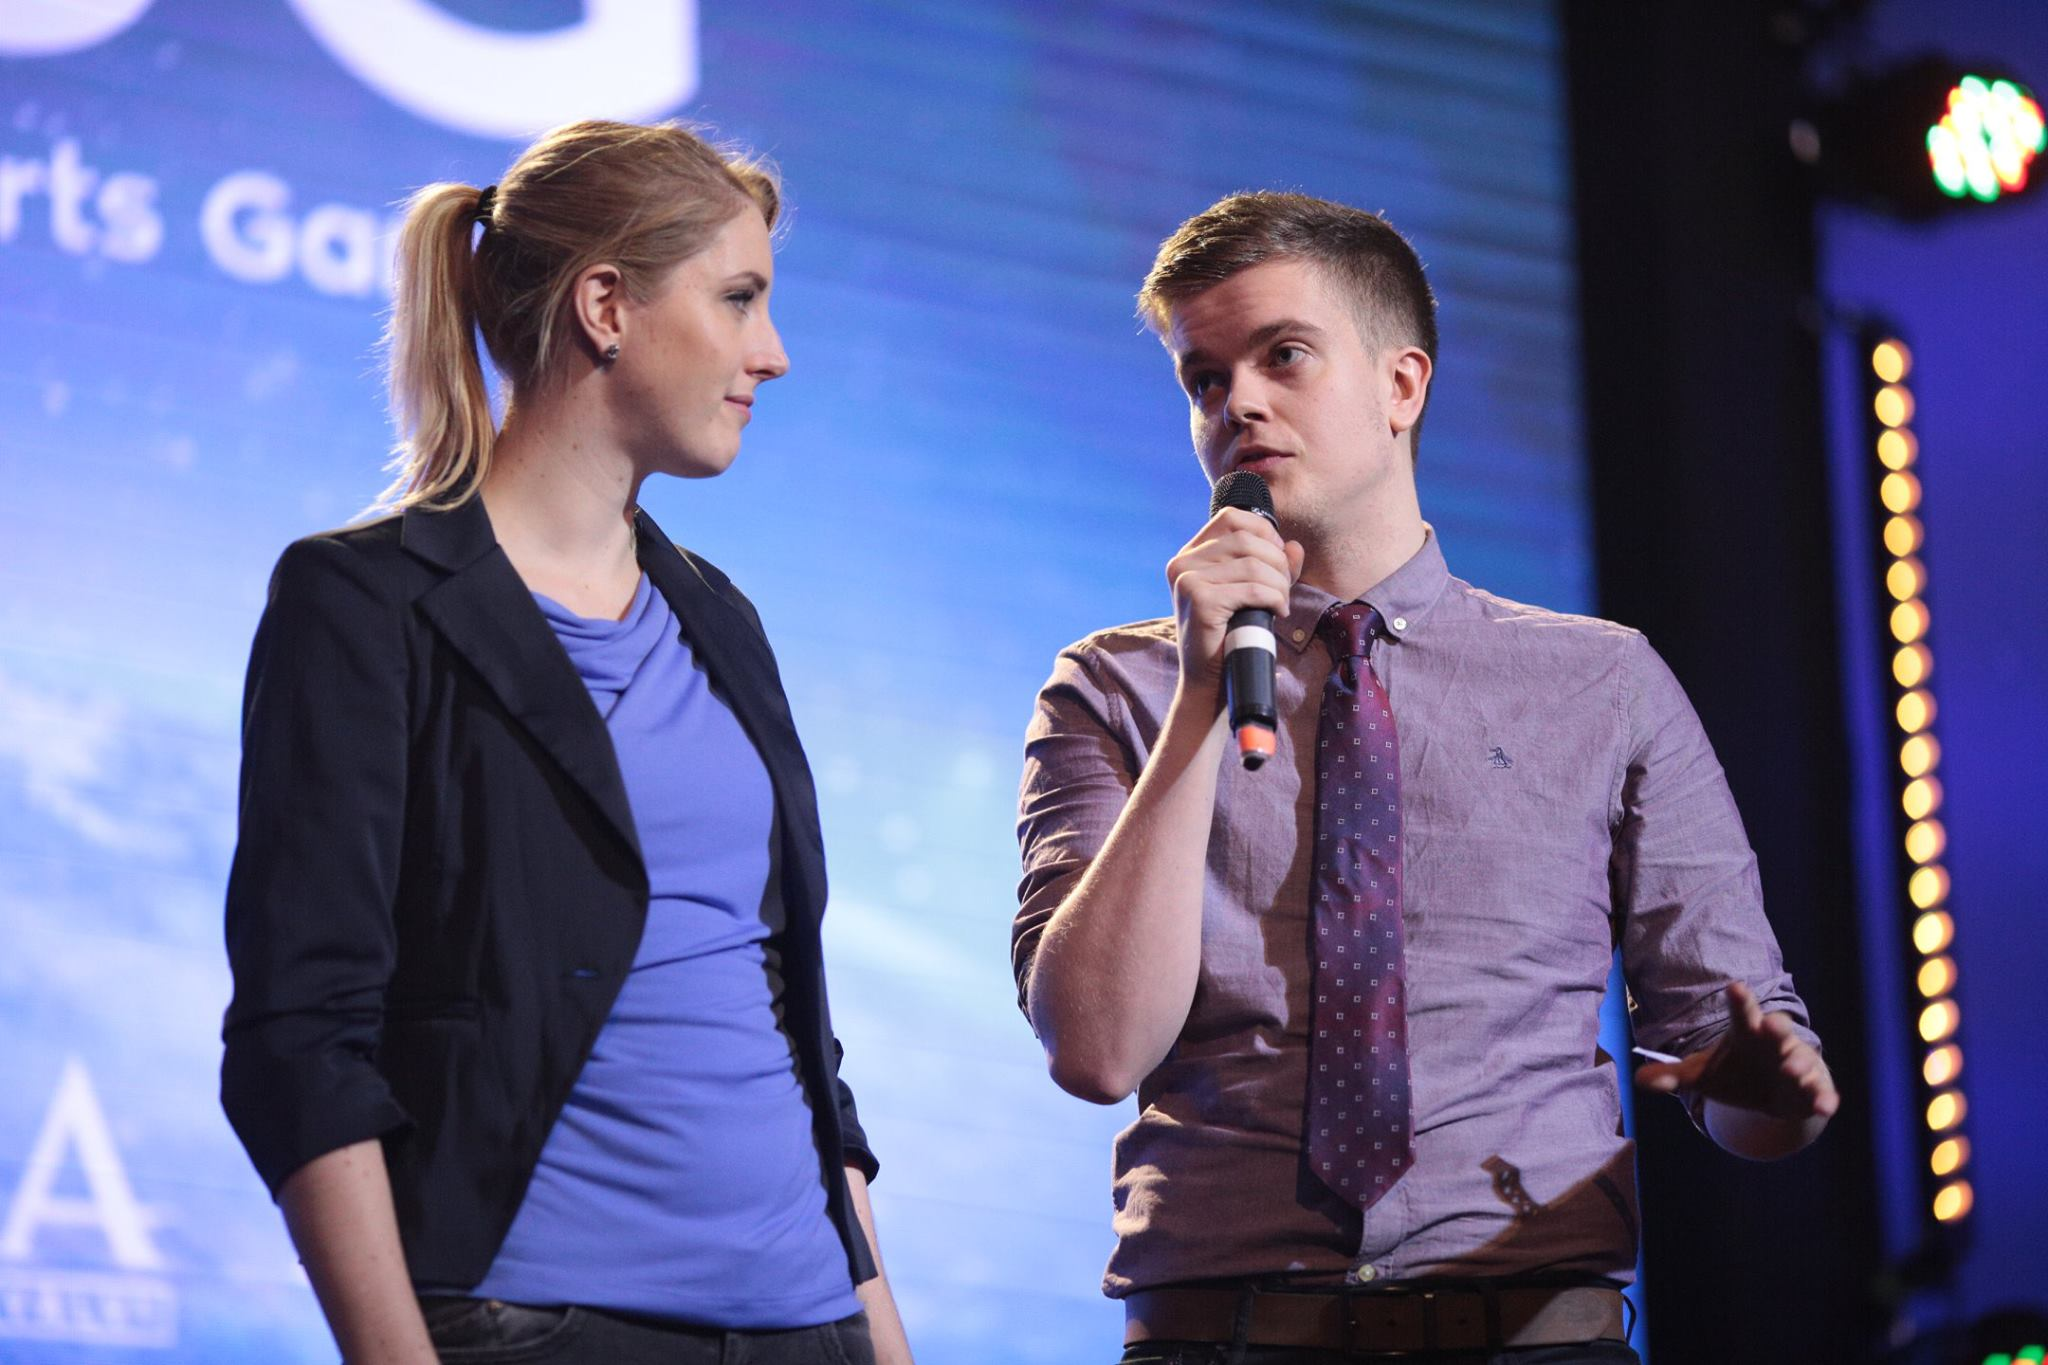 Sheever Presenter Host Esports Dota 2